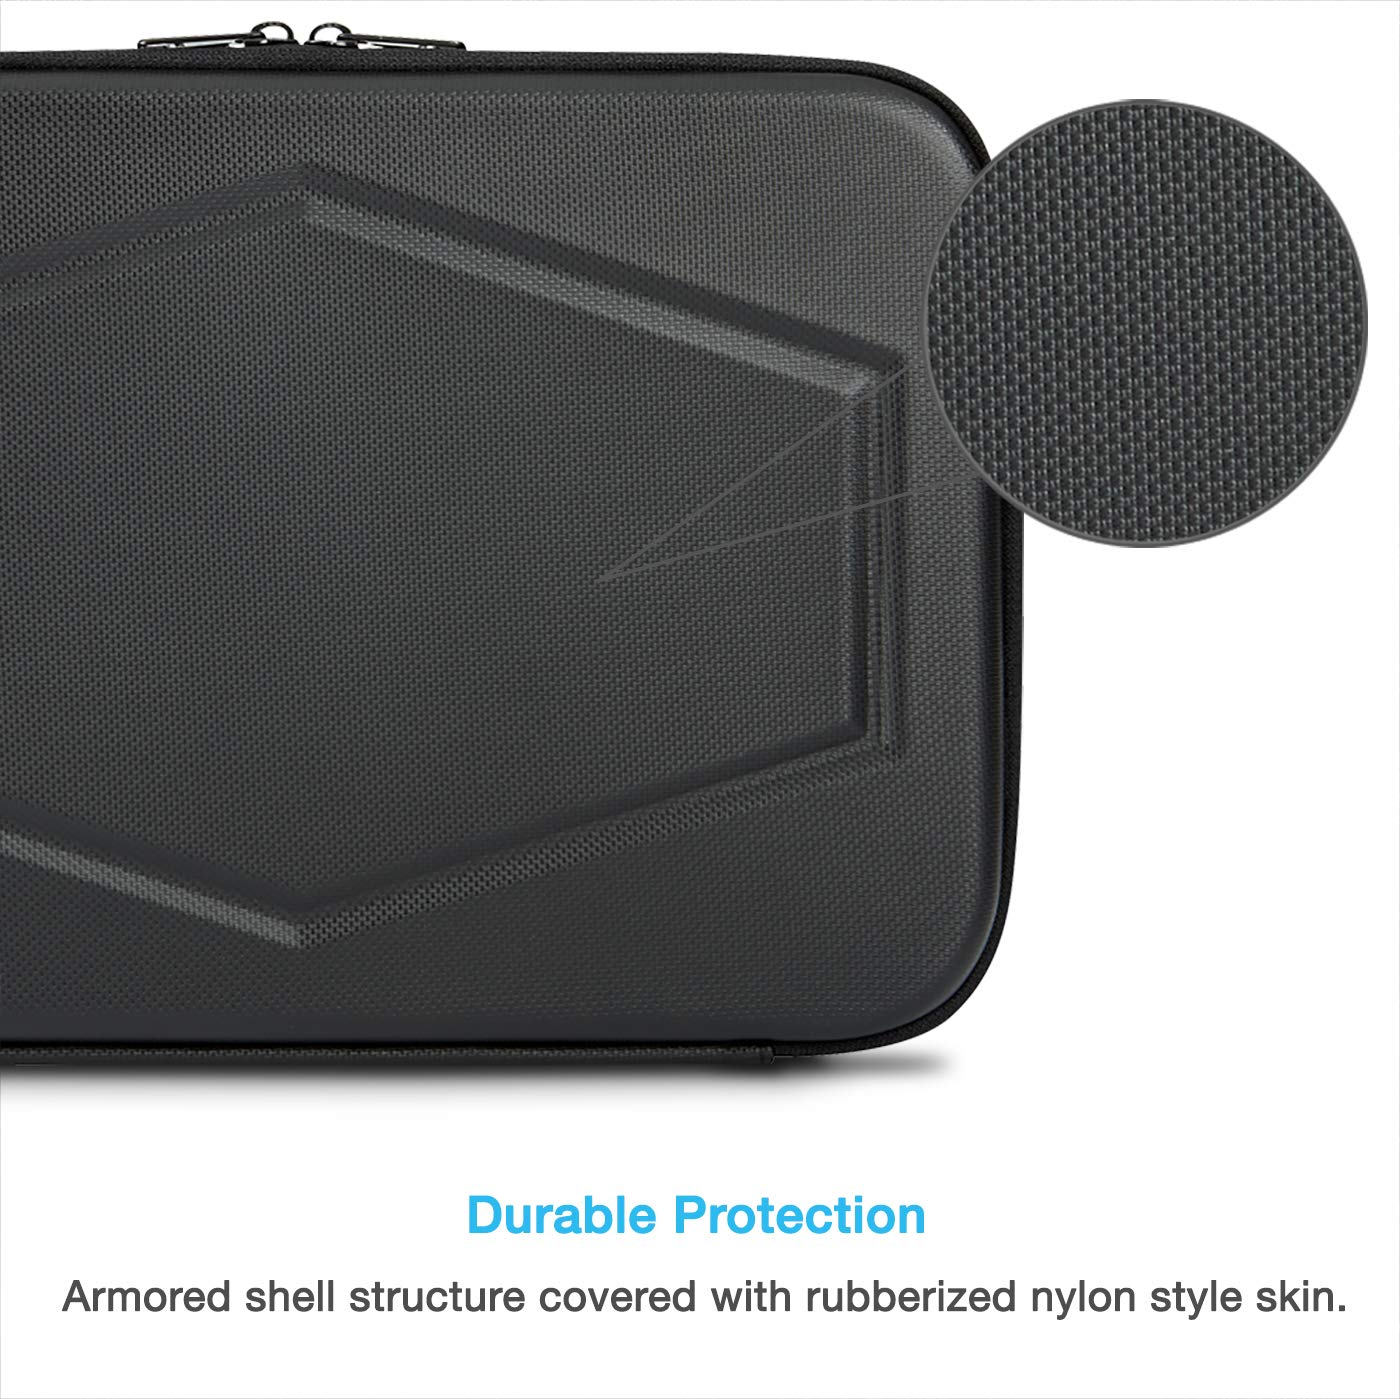 Ultrabook and Notebook. MR-CB1103 Cyber Acoustics Work-in Laptop Case with Handle for 11-11.6 Inch Chromebook